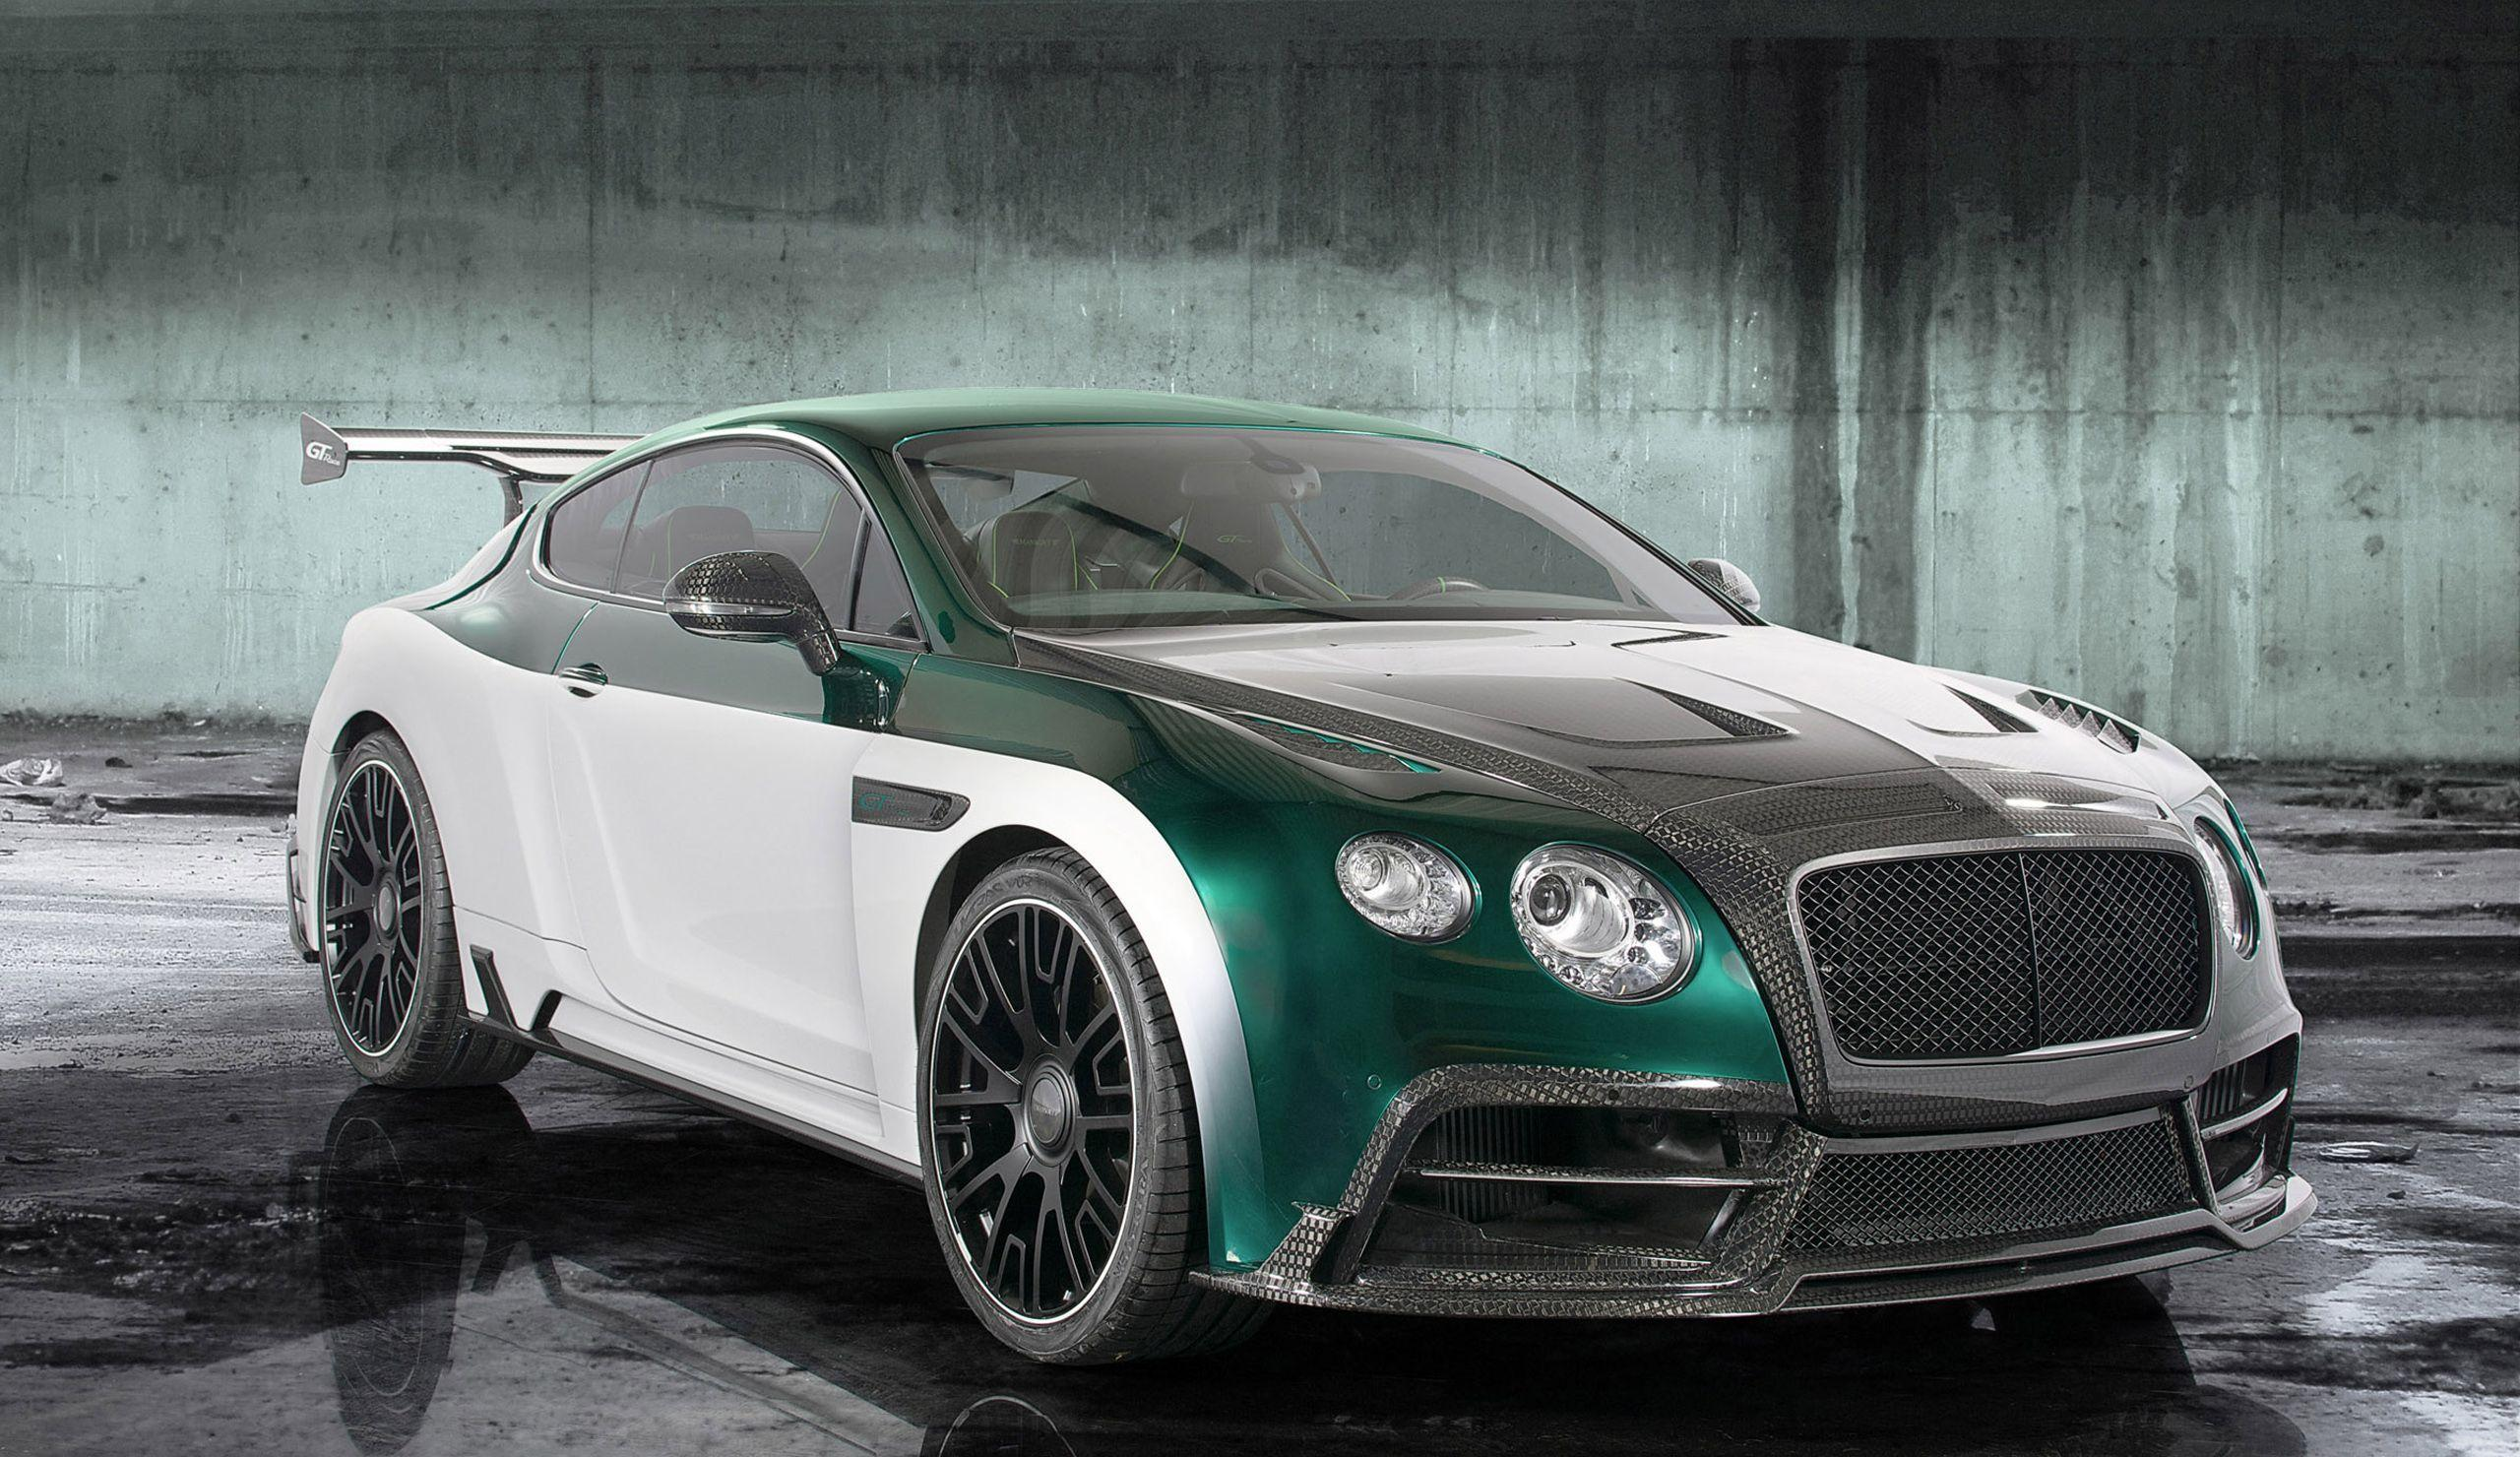 Mansory Bentley Continental GT (2015) hd wallpaper - Bentley ...